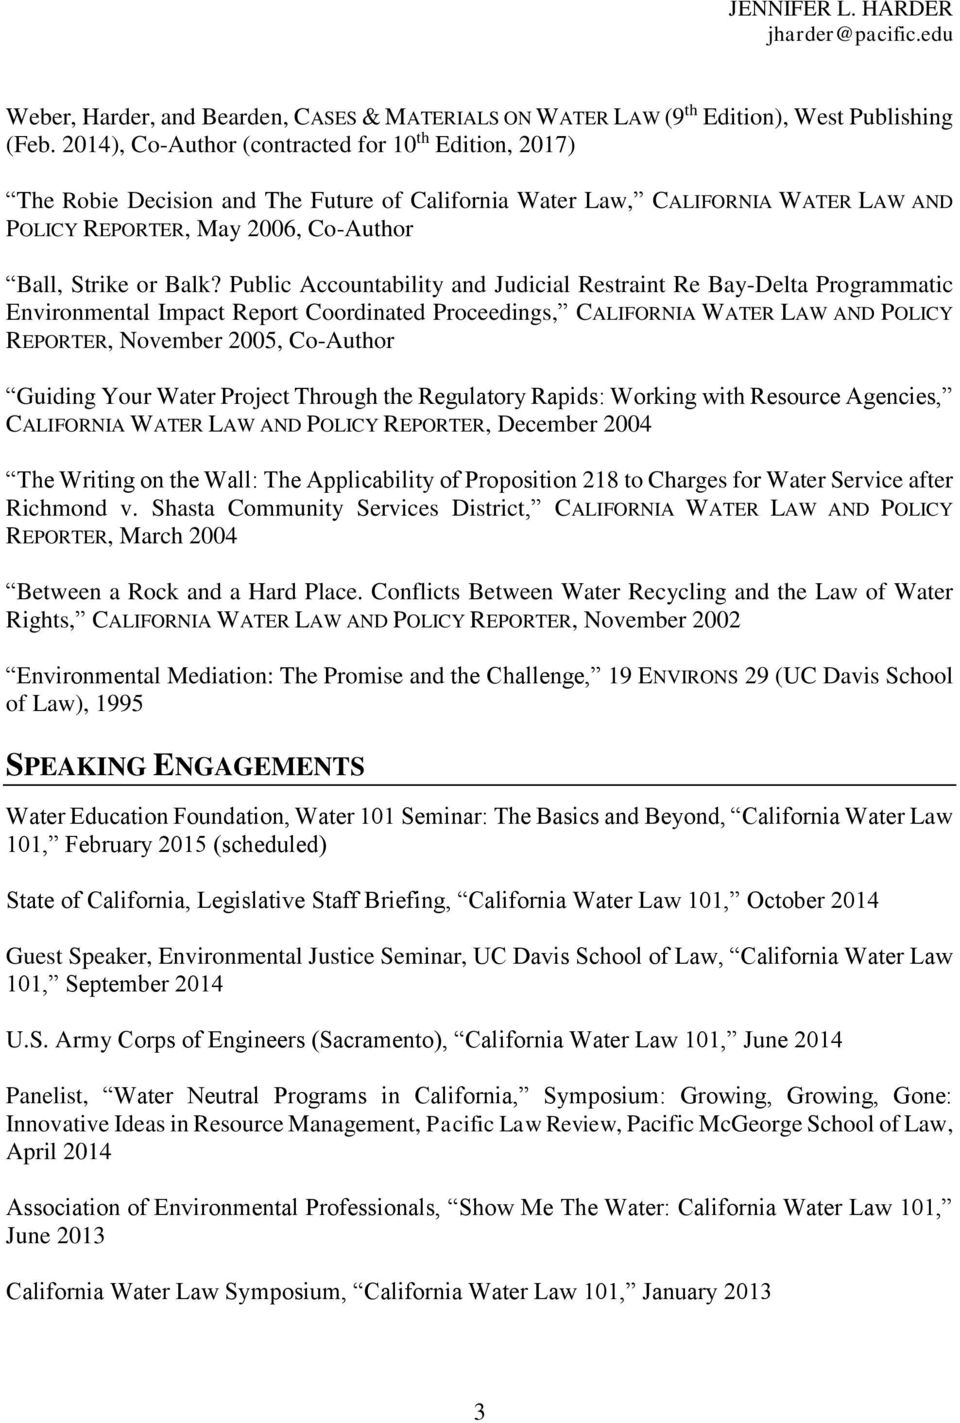 Public Accountability and Judicial Restraint Re Bay-Delta Programmatic Environmental Impact Report Coordinated Proceedings, CALIFORNIA WATER LAW AND POLICY REPORTER, November 2005, Co-Author Guiding